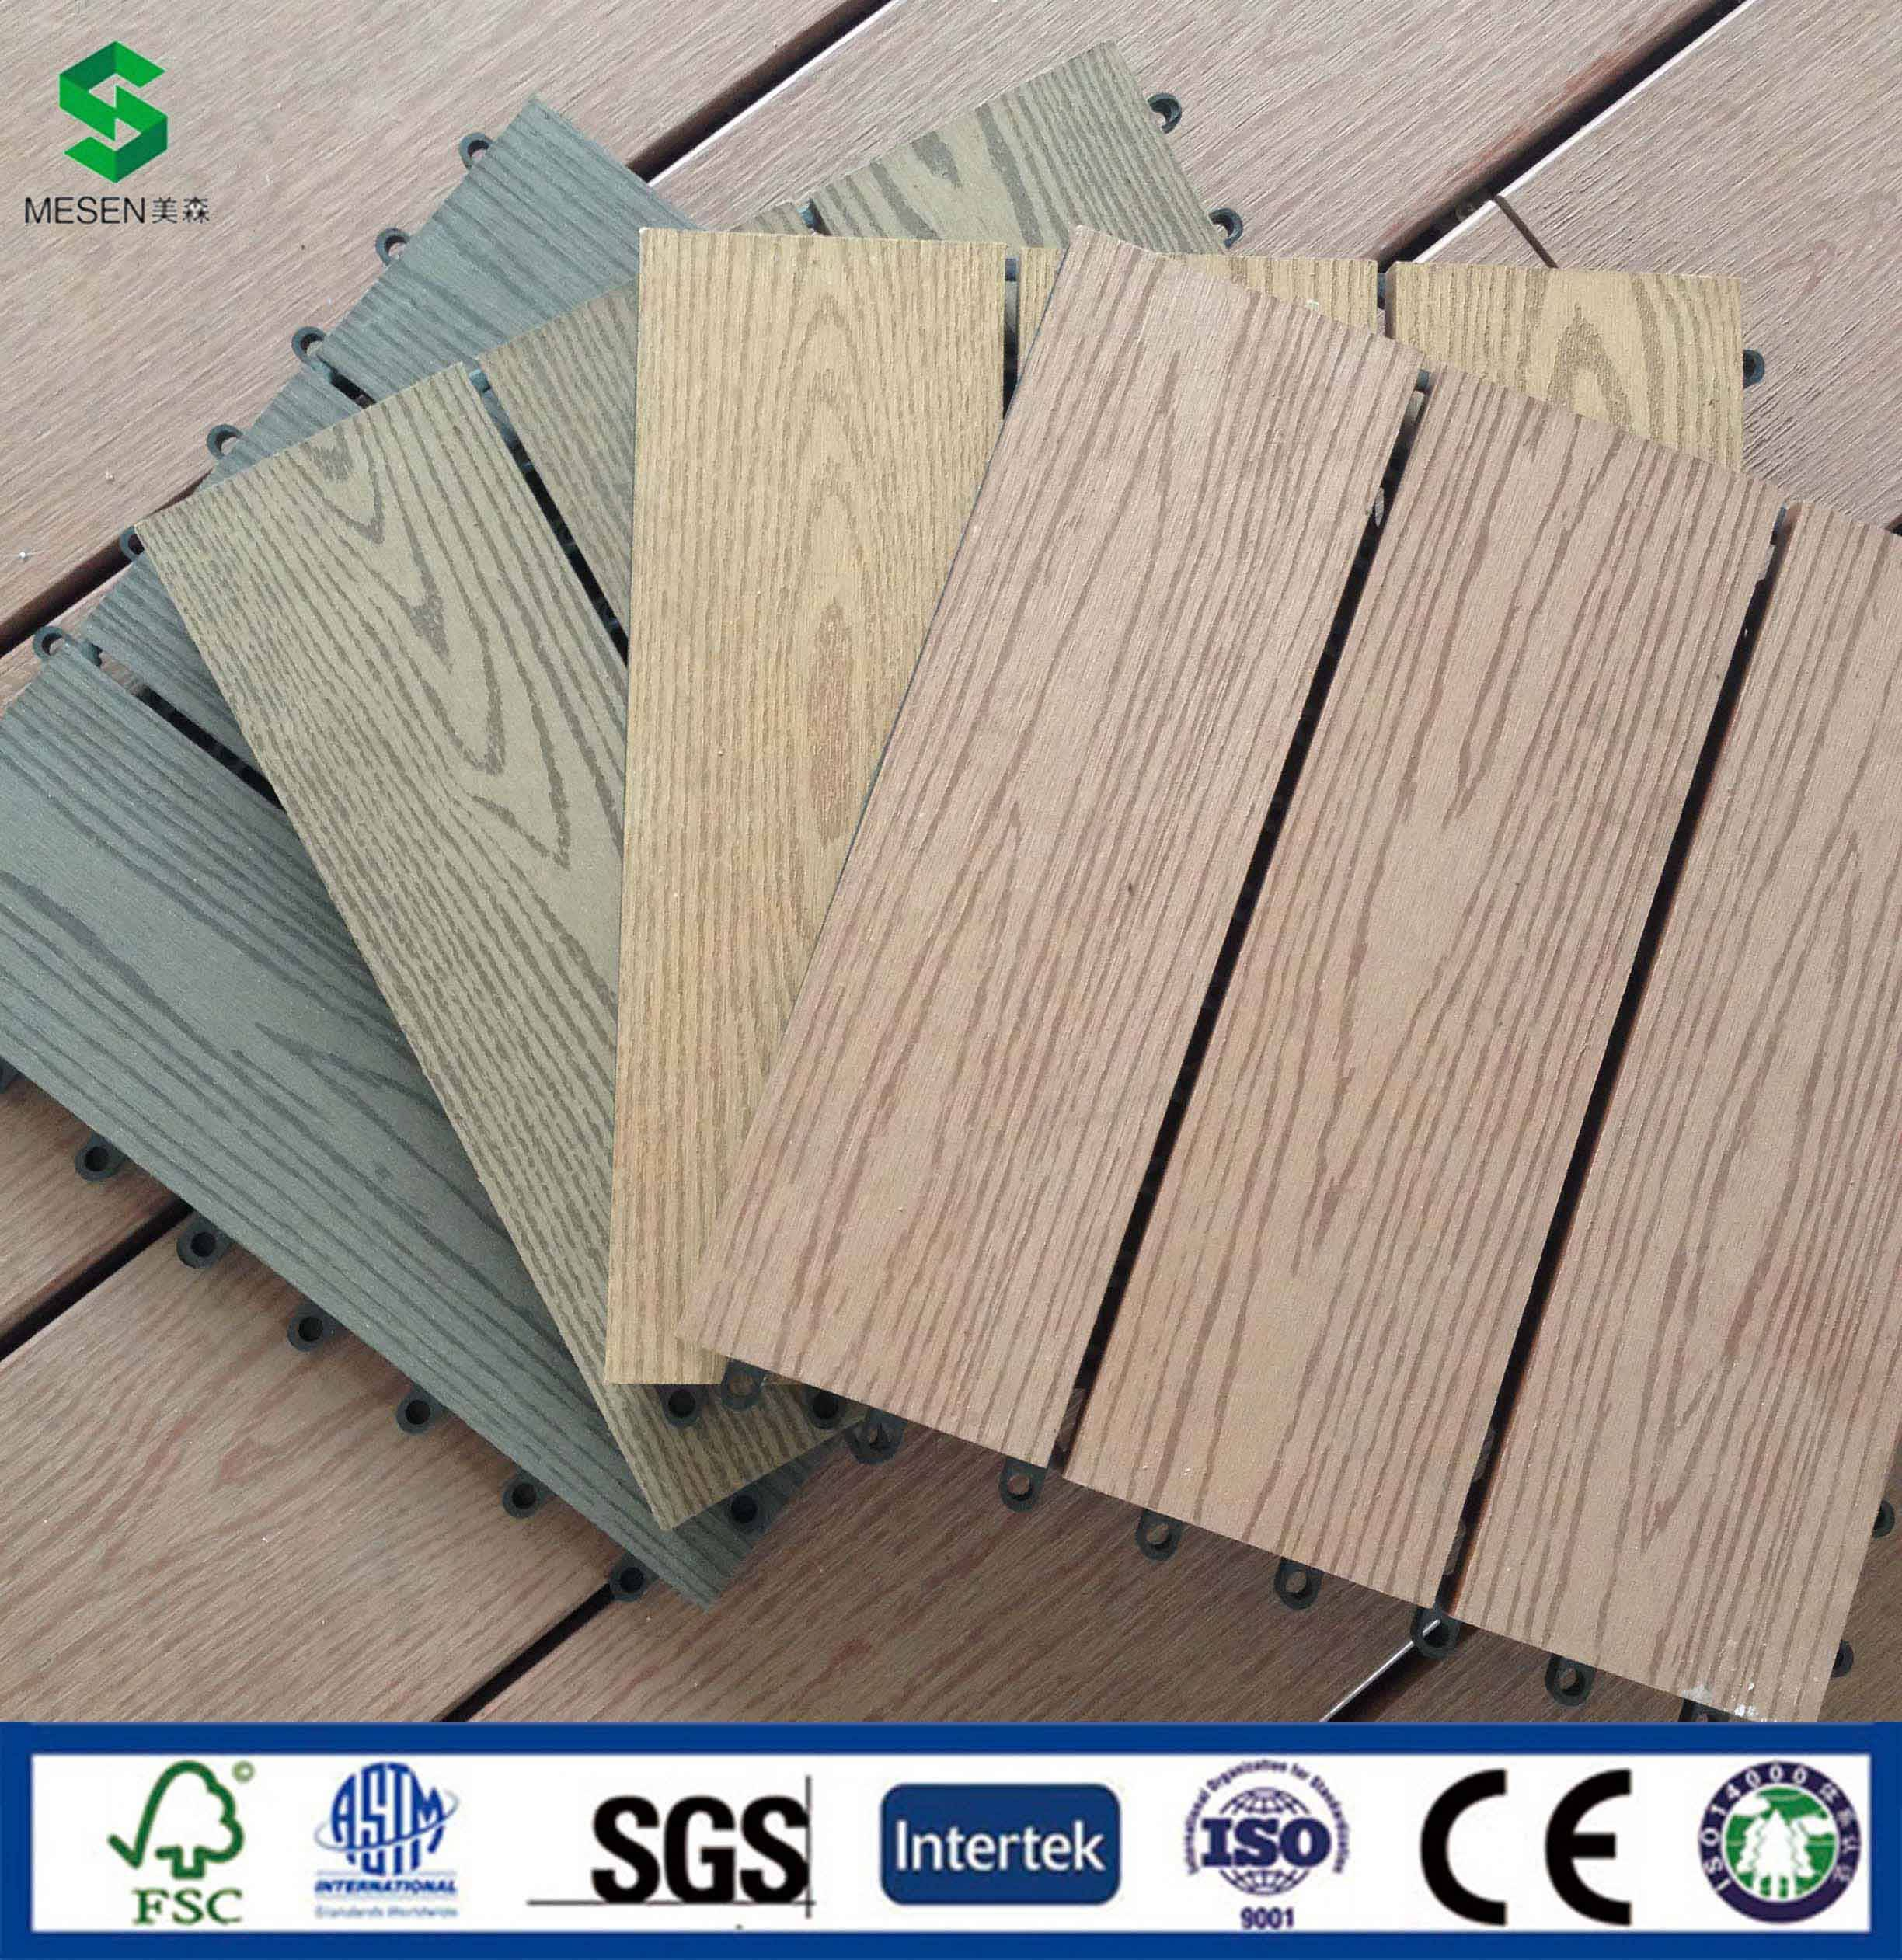 Sell Wood Plastic Composite(WPC) Tile in Landscape Outdoor Decking